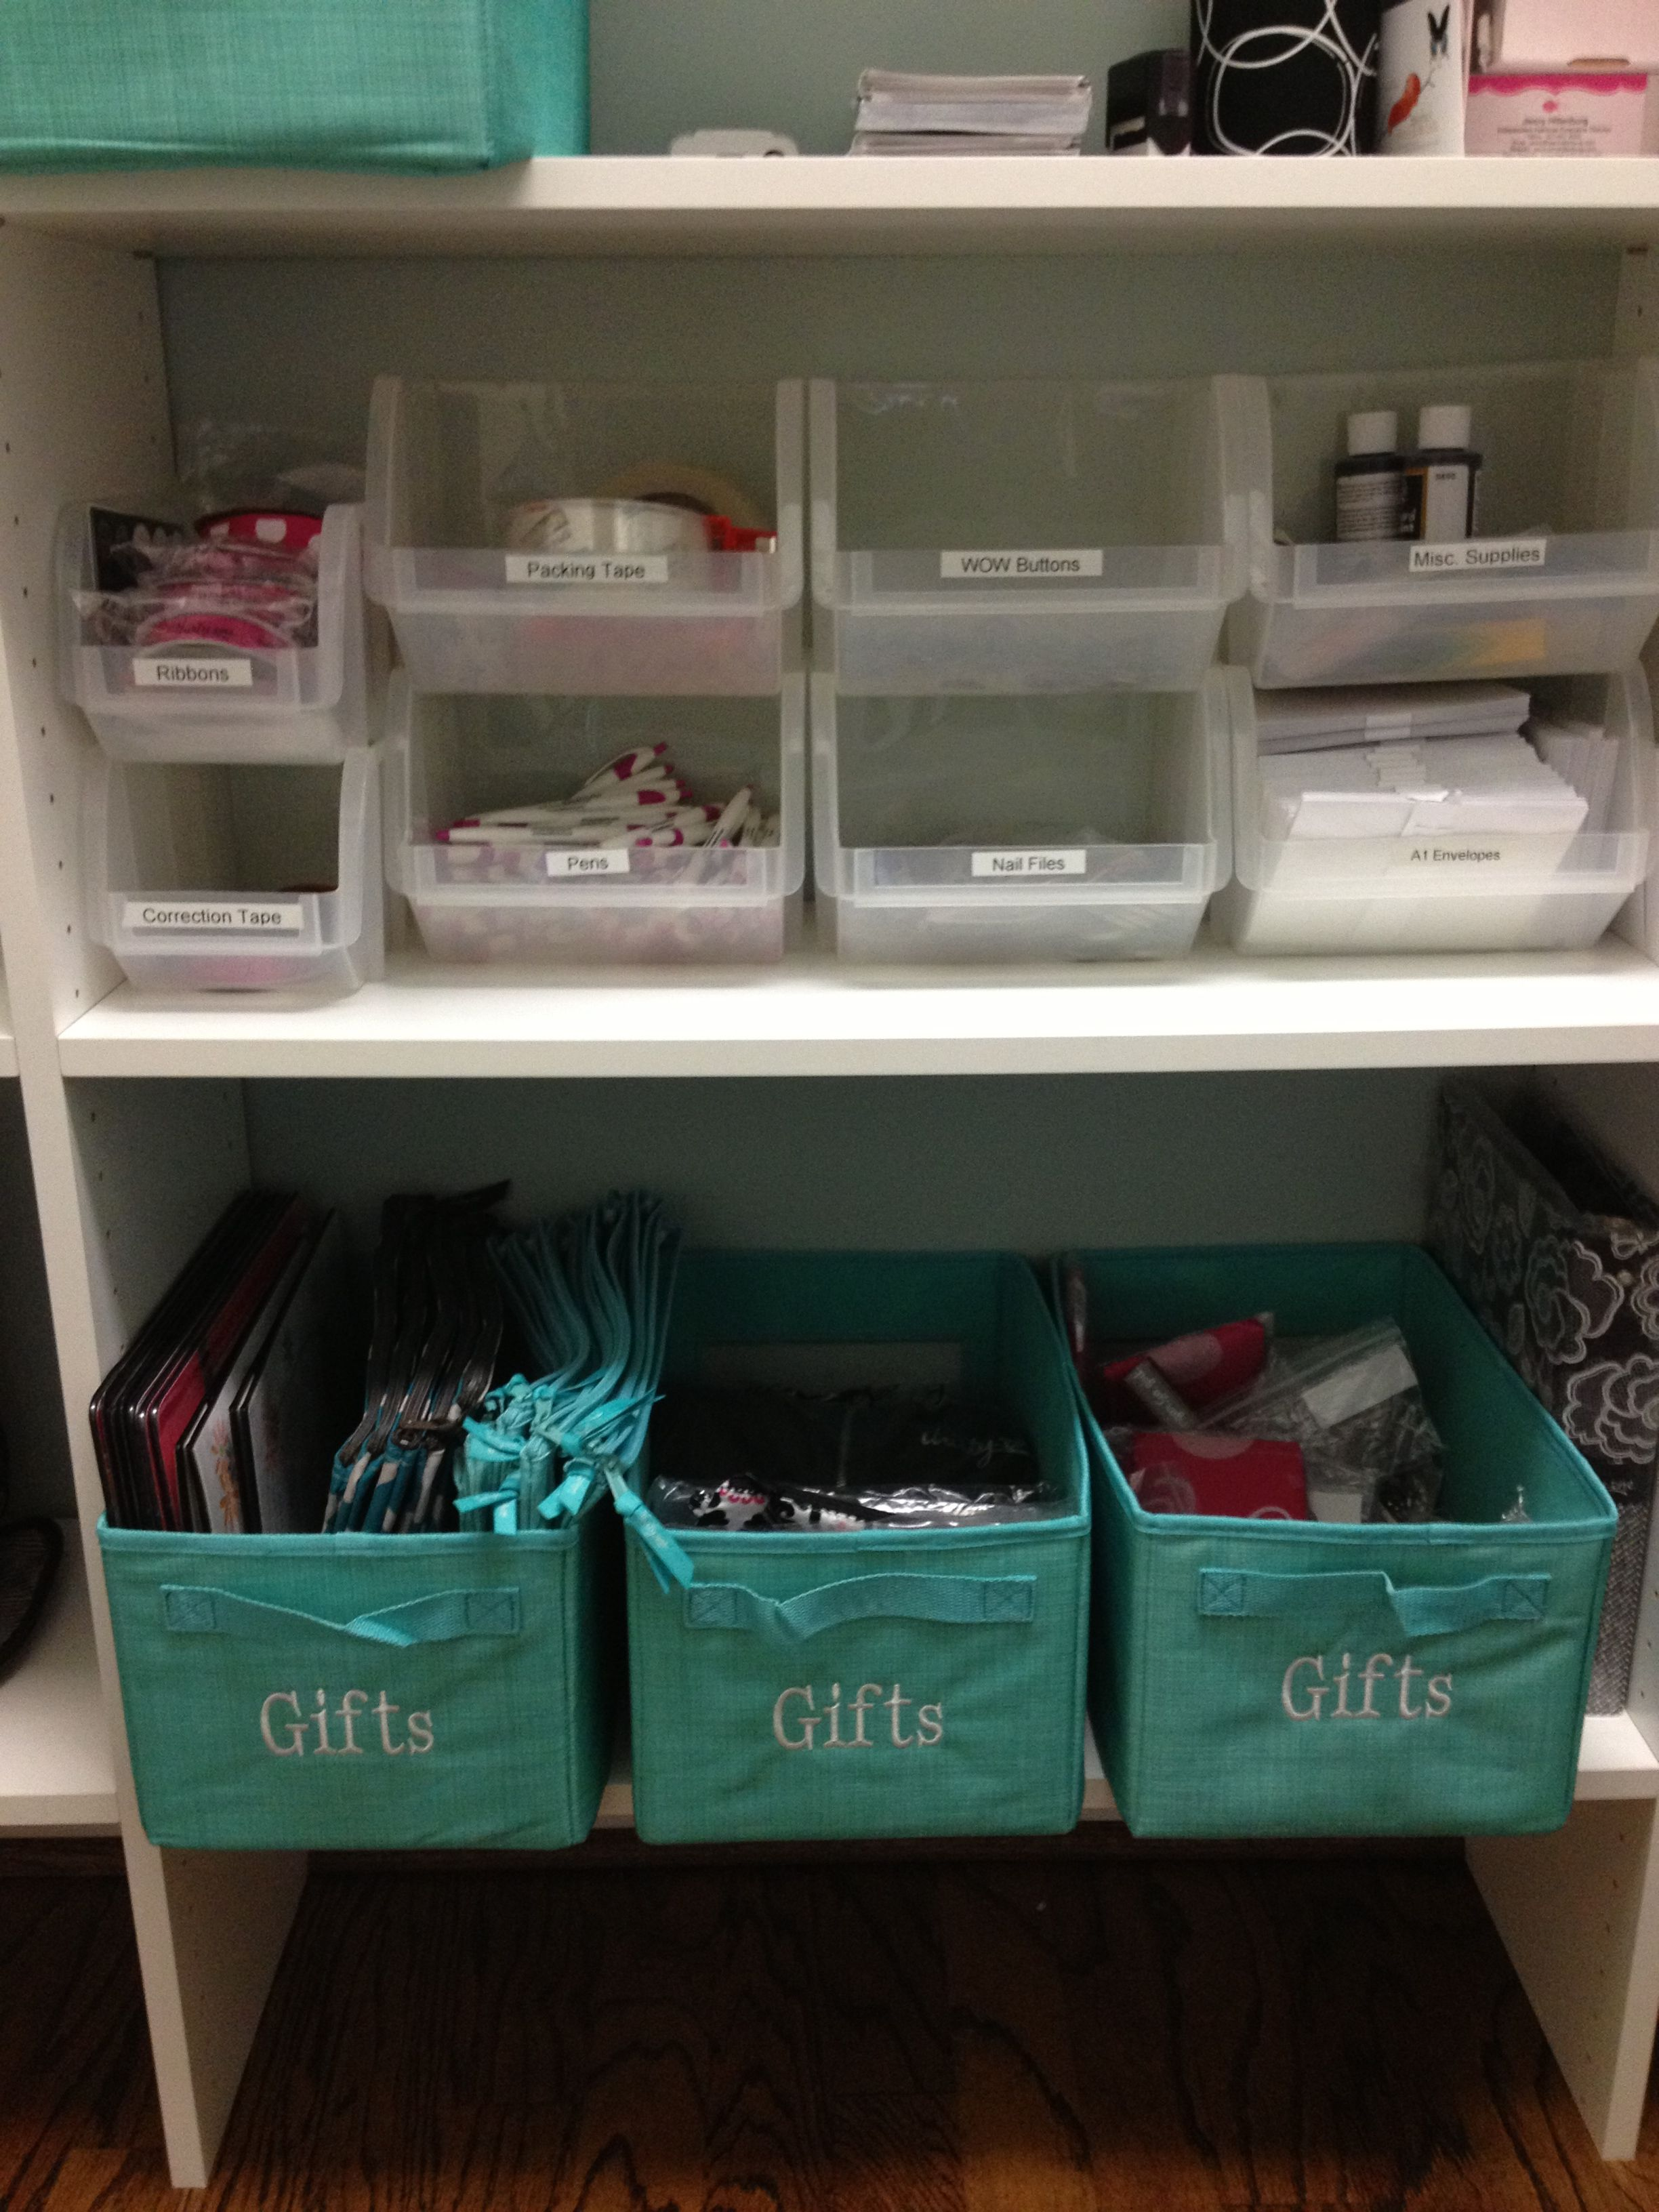 Thirty One Office Ideas 2019 An organized supply closet is a happy place! #thirtyoneconsultant